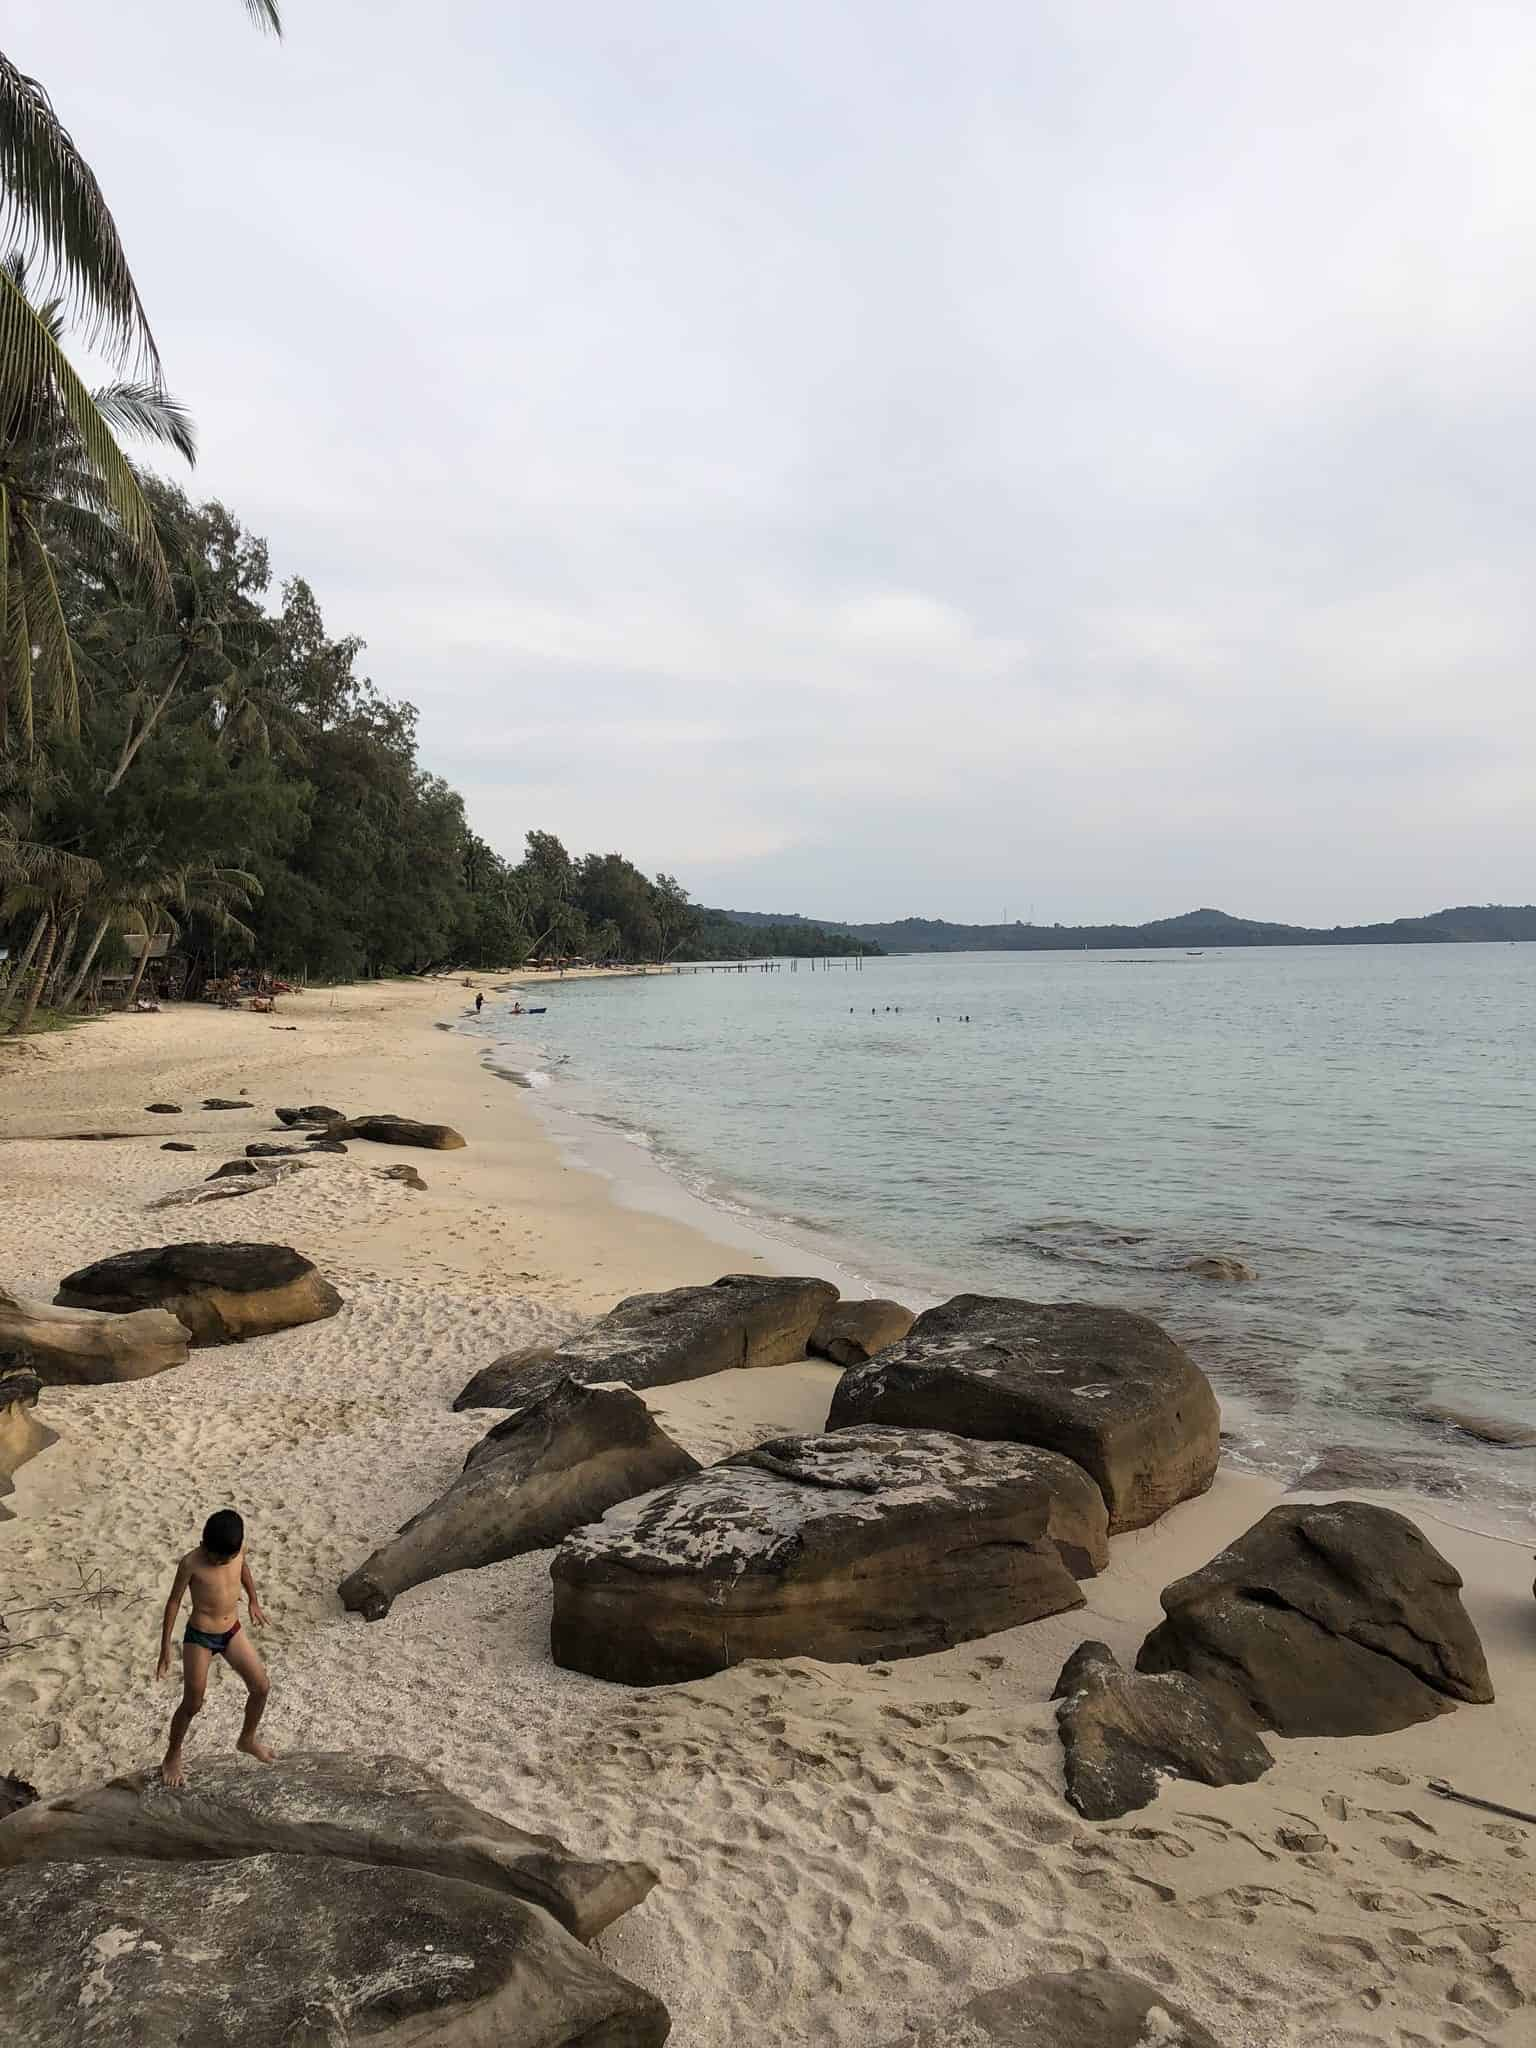 Thailand Travel Guide - Koh Kood